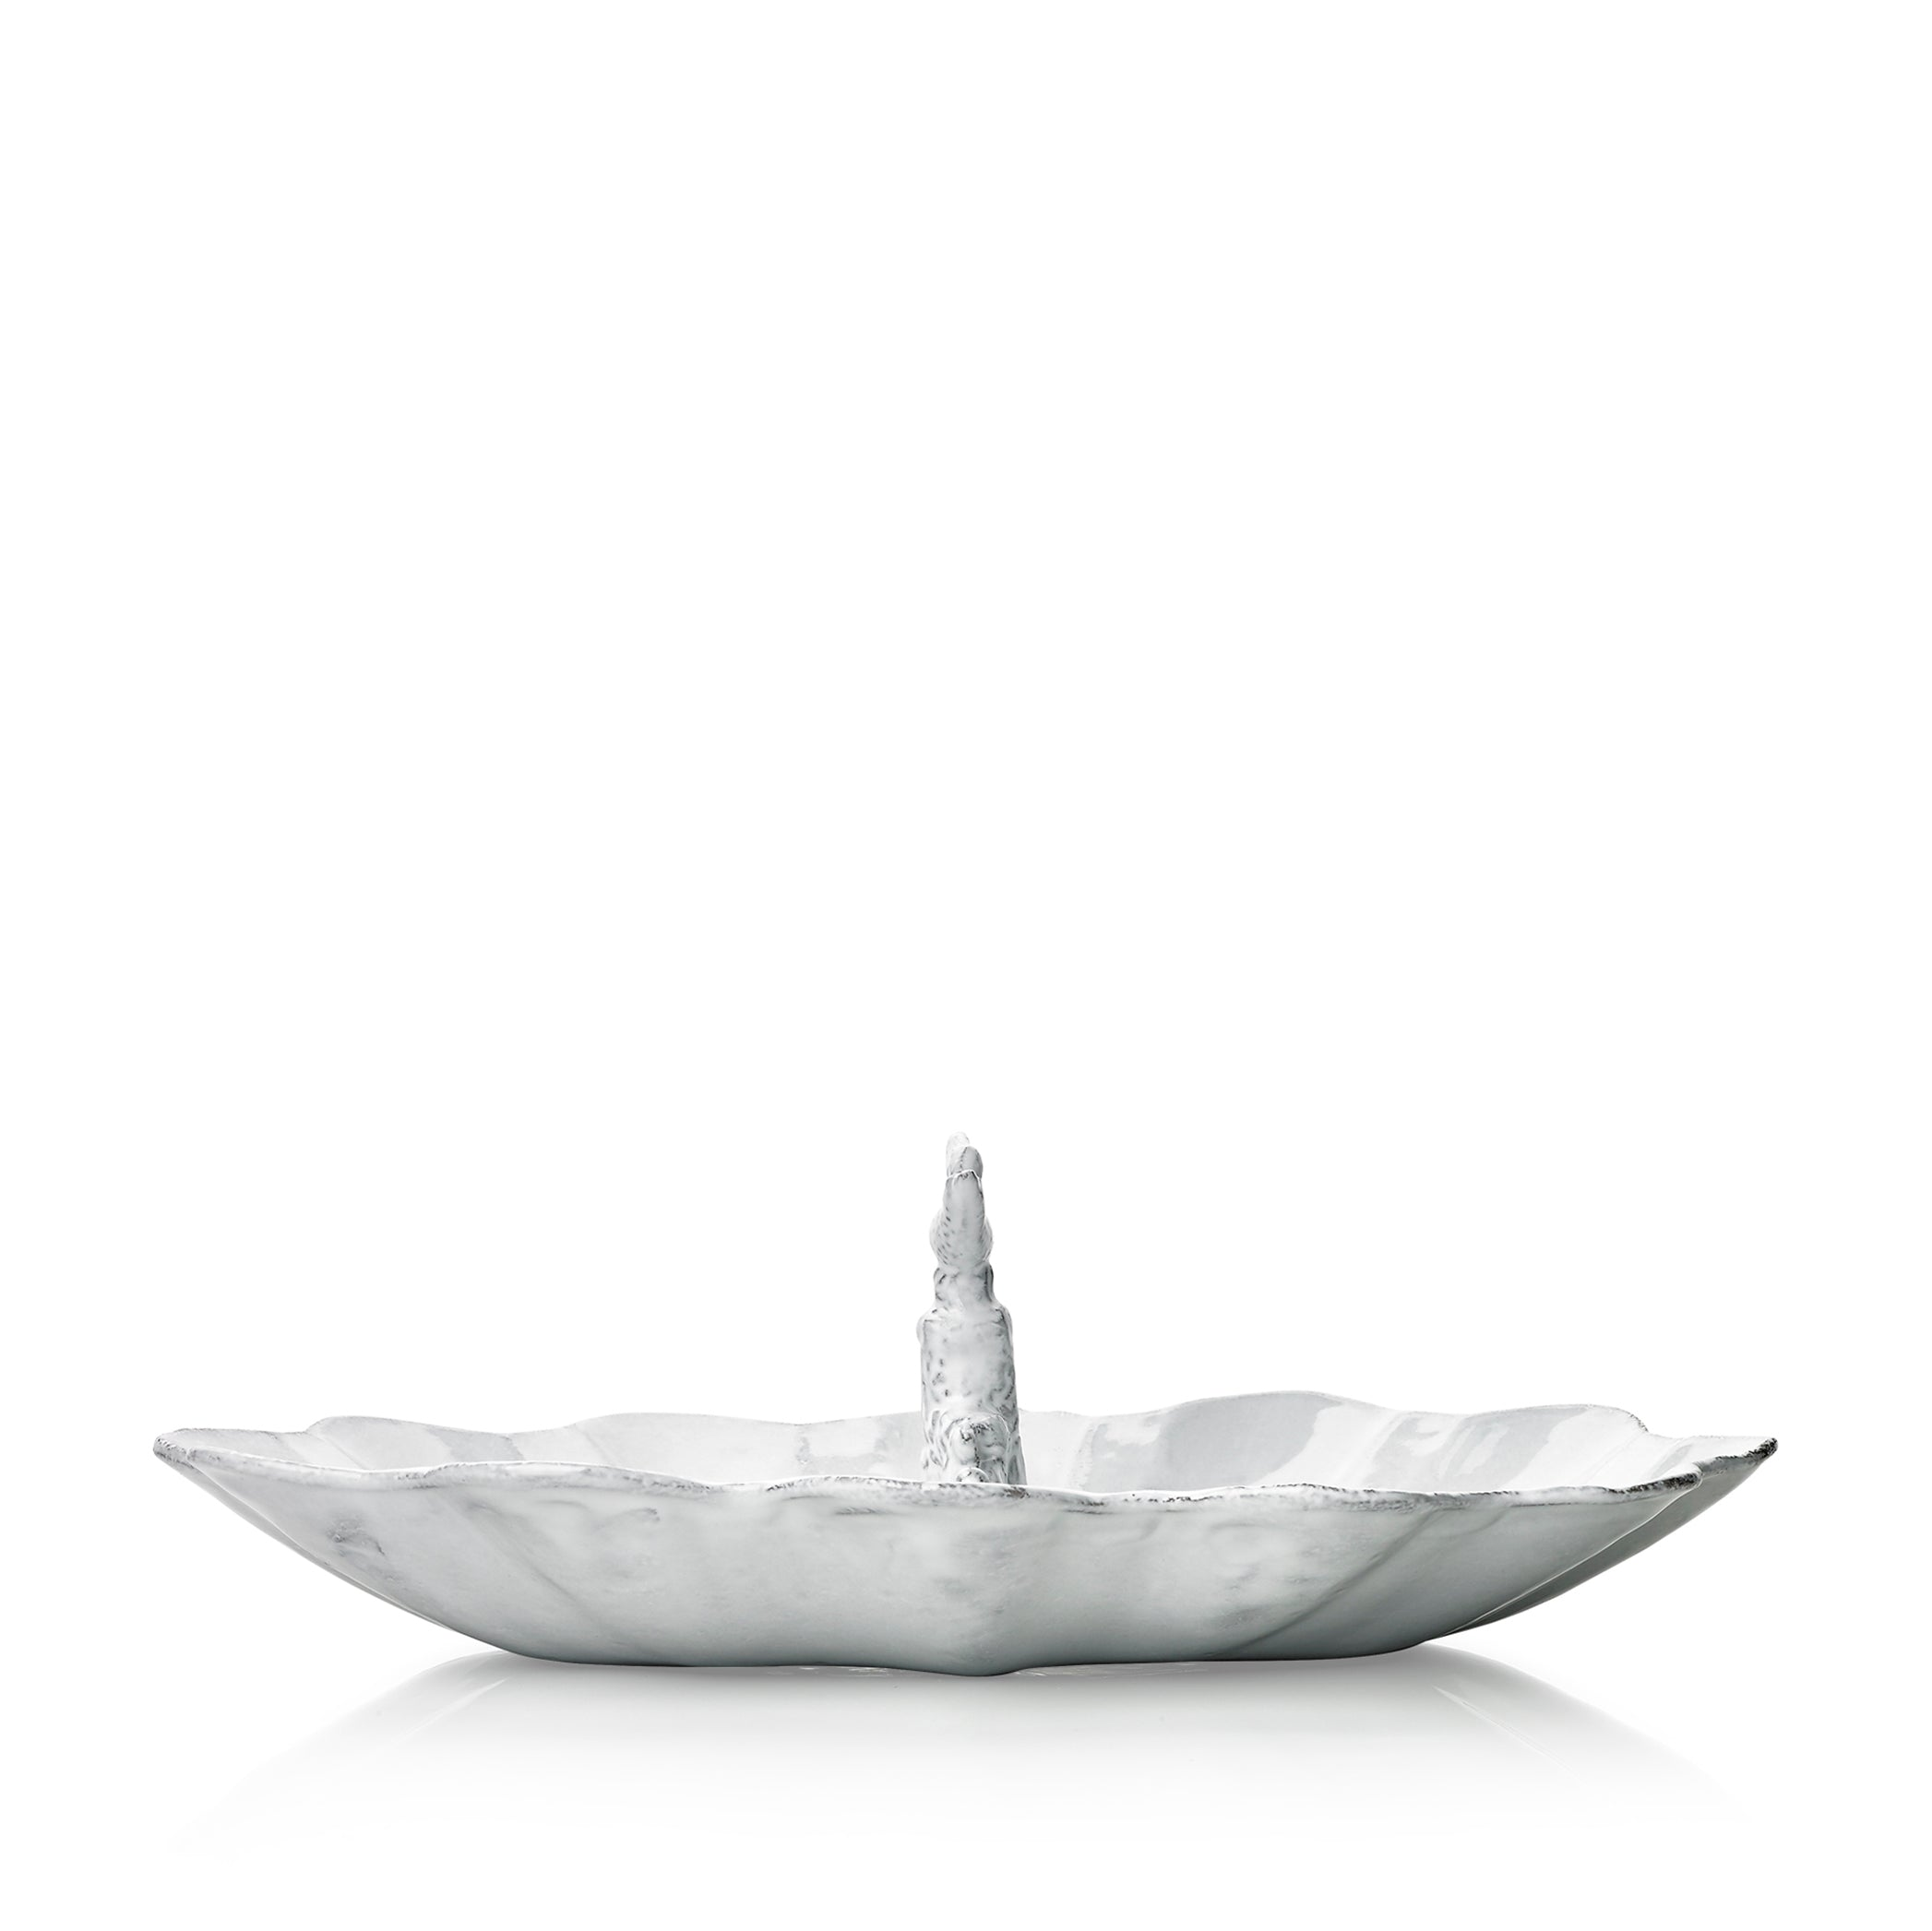 Oiseau Vegetable Serving Platter by Astier de Villatte